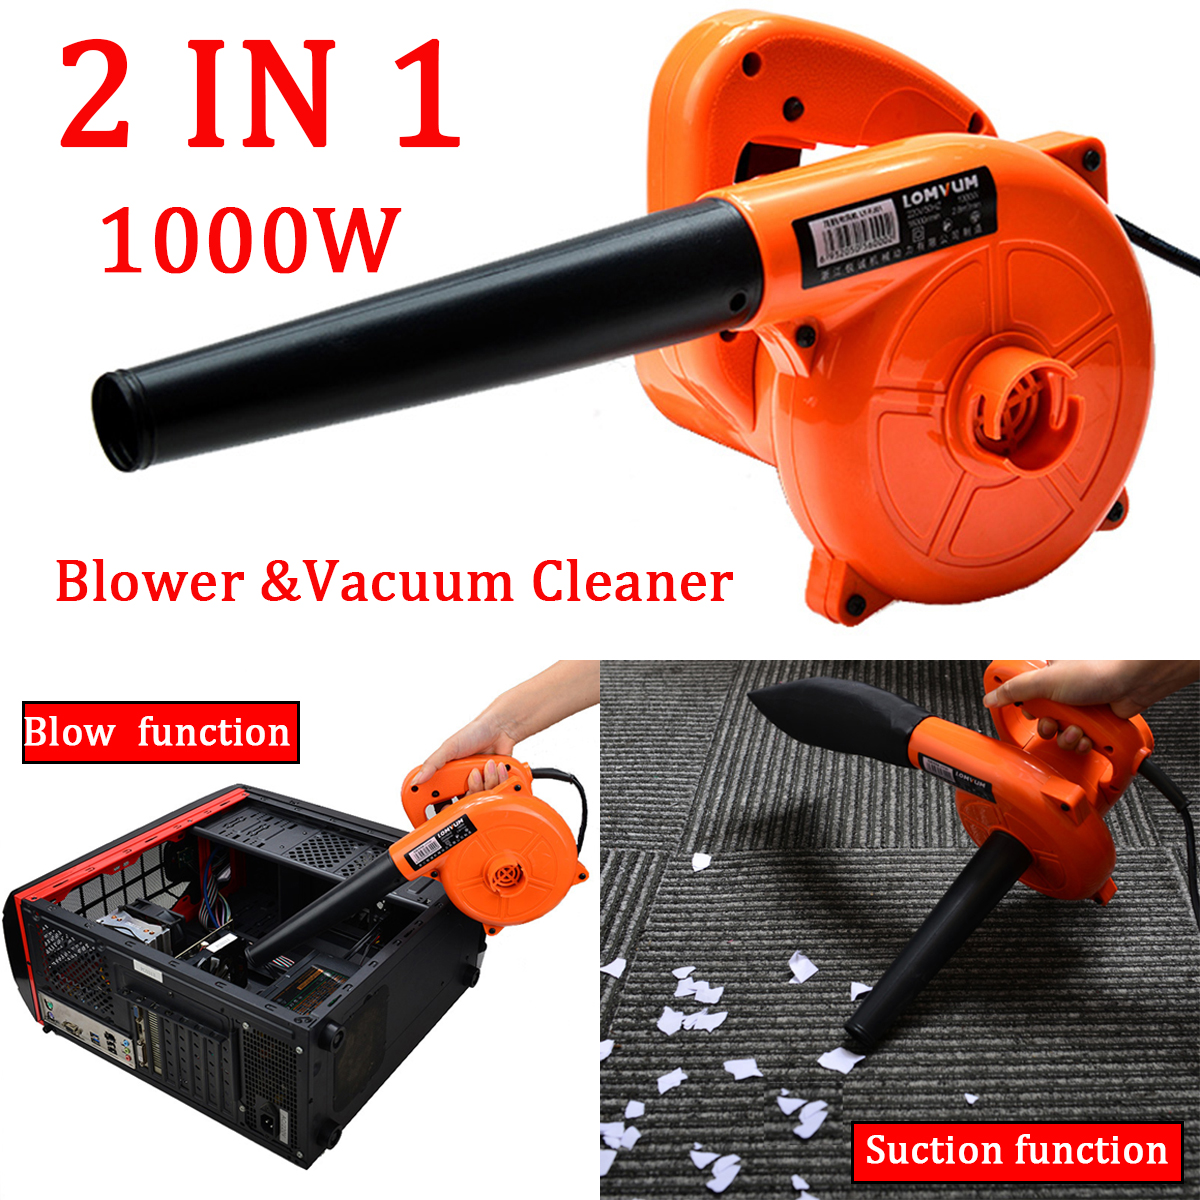 2 IN 1 Handheld Electric Air Turbo Blower 1000W Dust Vacuum Cleaner Car Computer